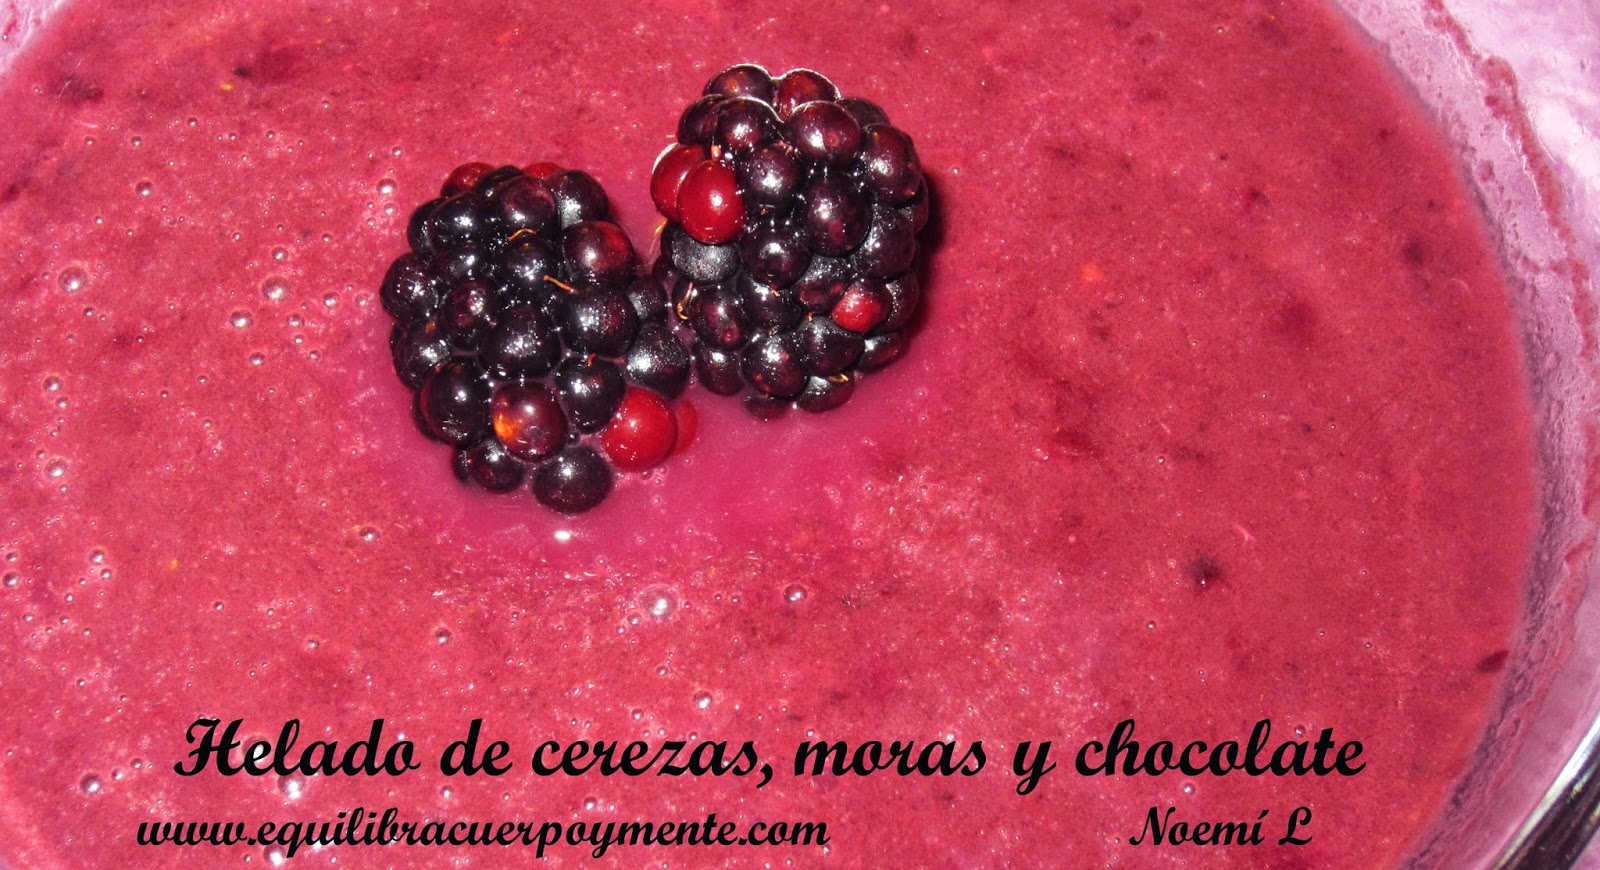 Helado de cerezas moras y chocolate